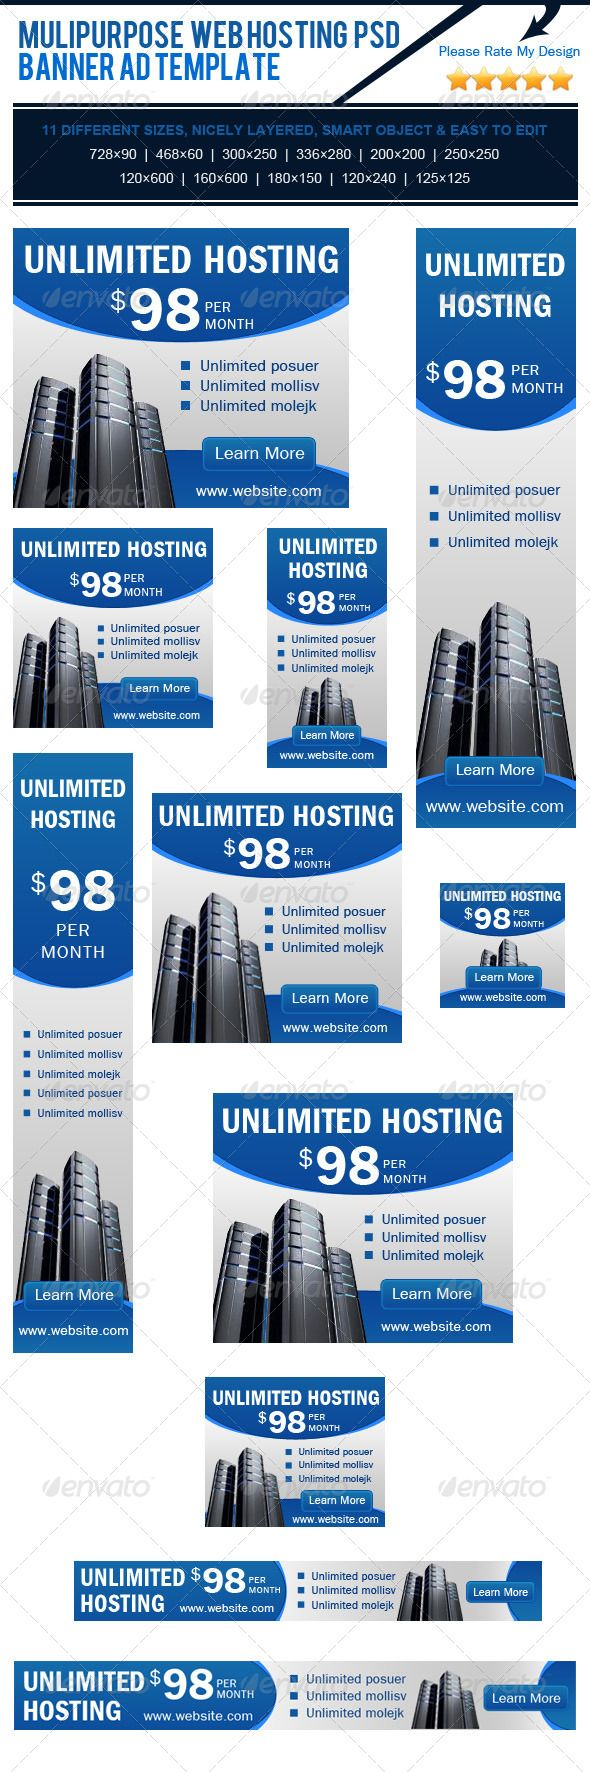 Multipurpose Web Hosting PSD Banner Ad Template - Banners & Ads Web Elements. http://www.serverpoint.com/